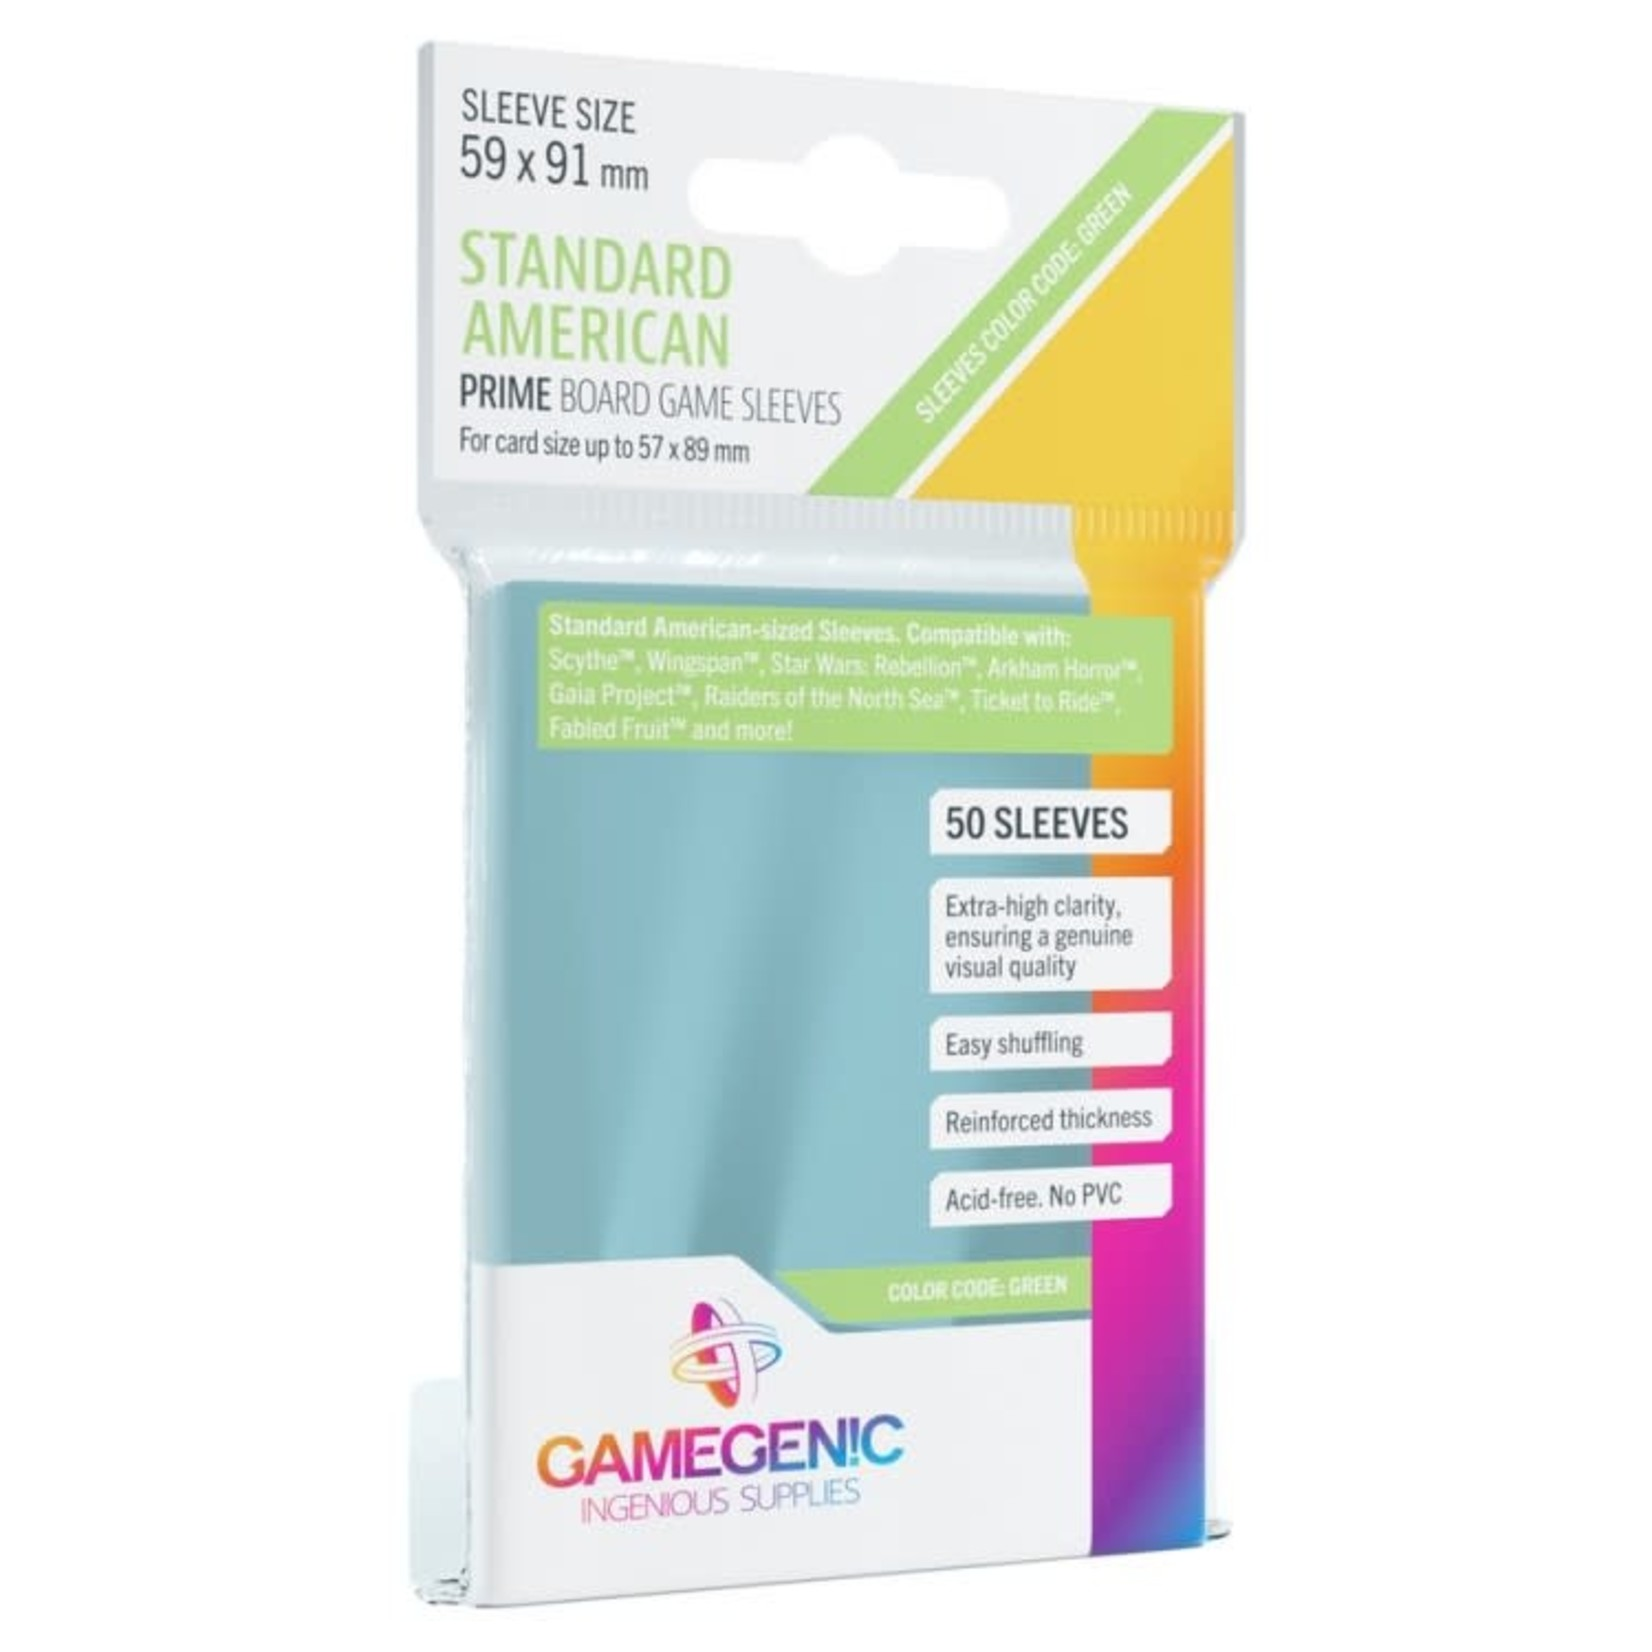 Gamegenic Gamegenic Sleeves: Standard American PRIME - 50 count (59x91mm)